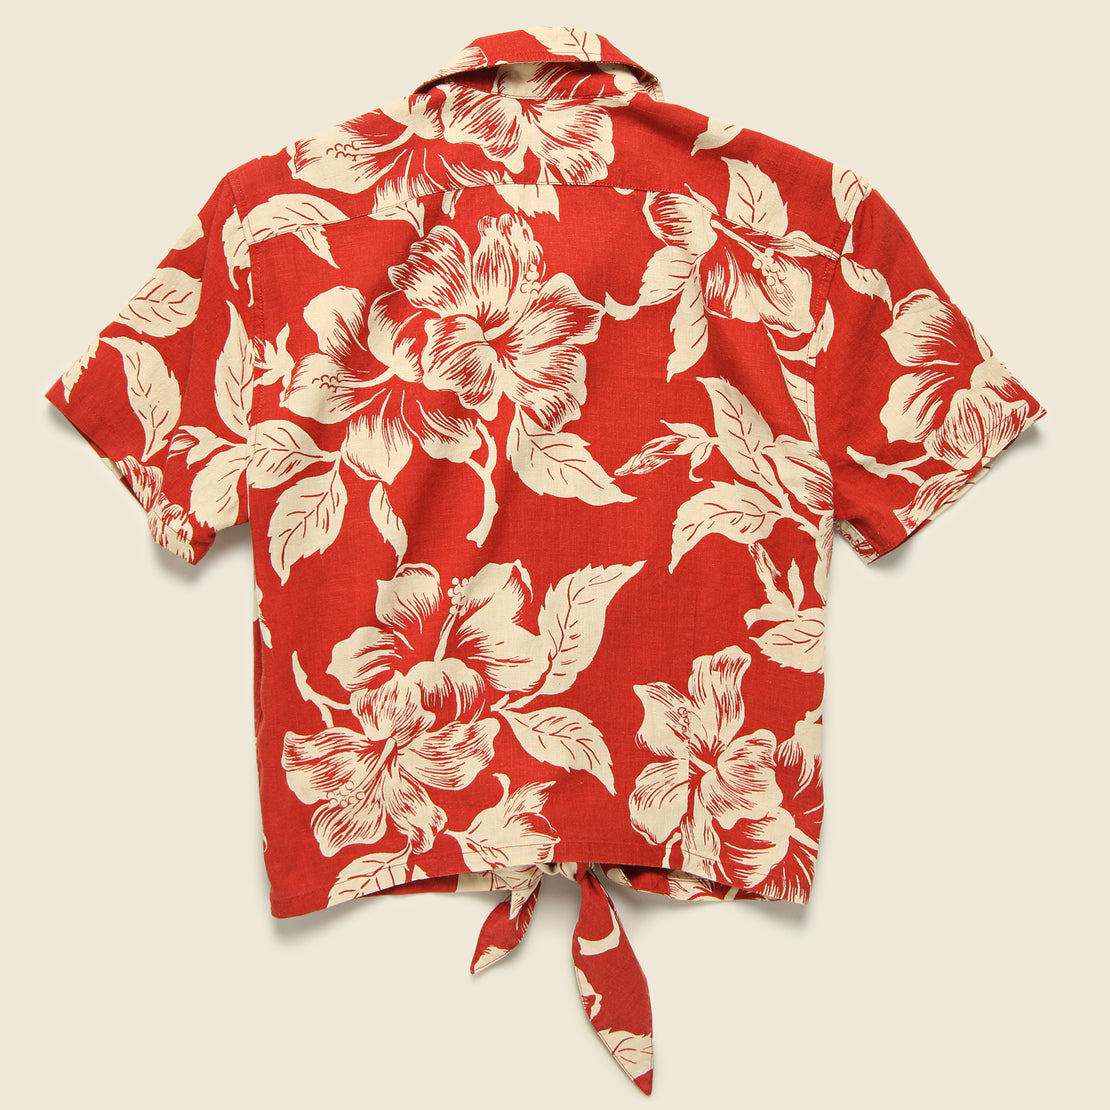 Laura Aloha Shirt - Red/Cream